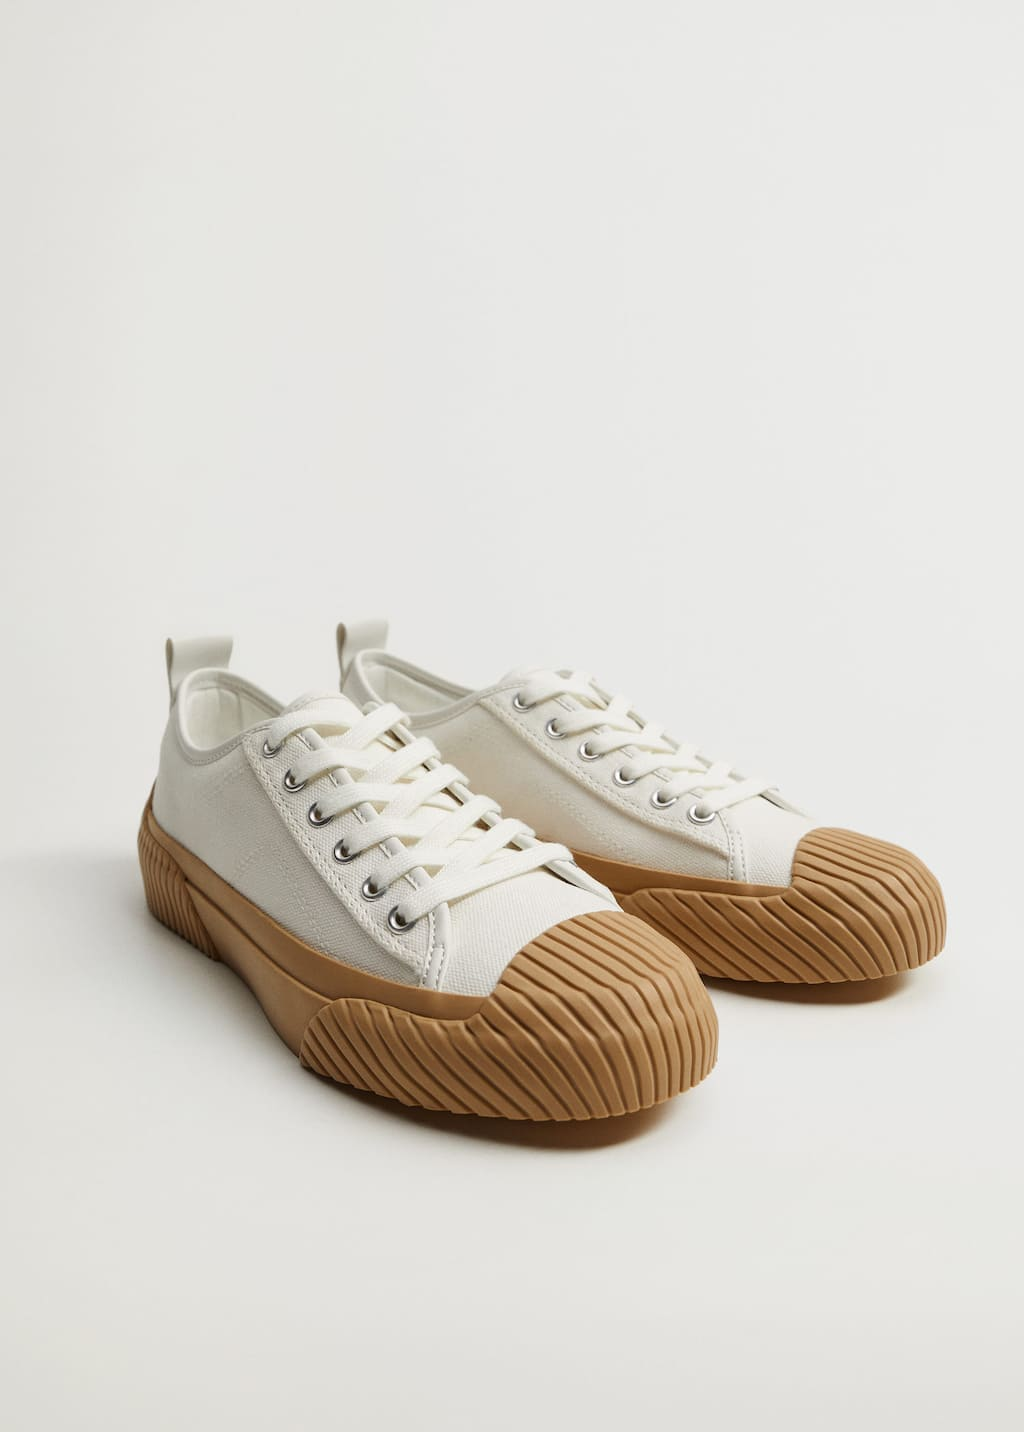 Organic cotton sneakers - Medium plane